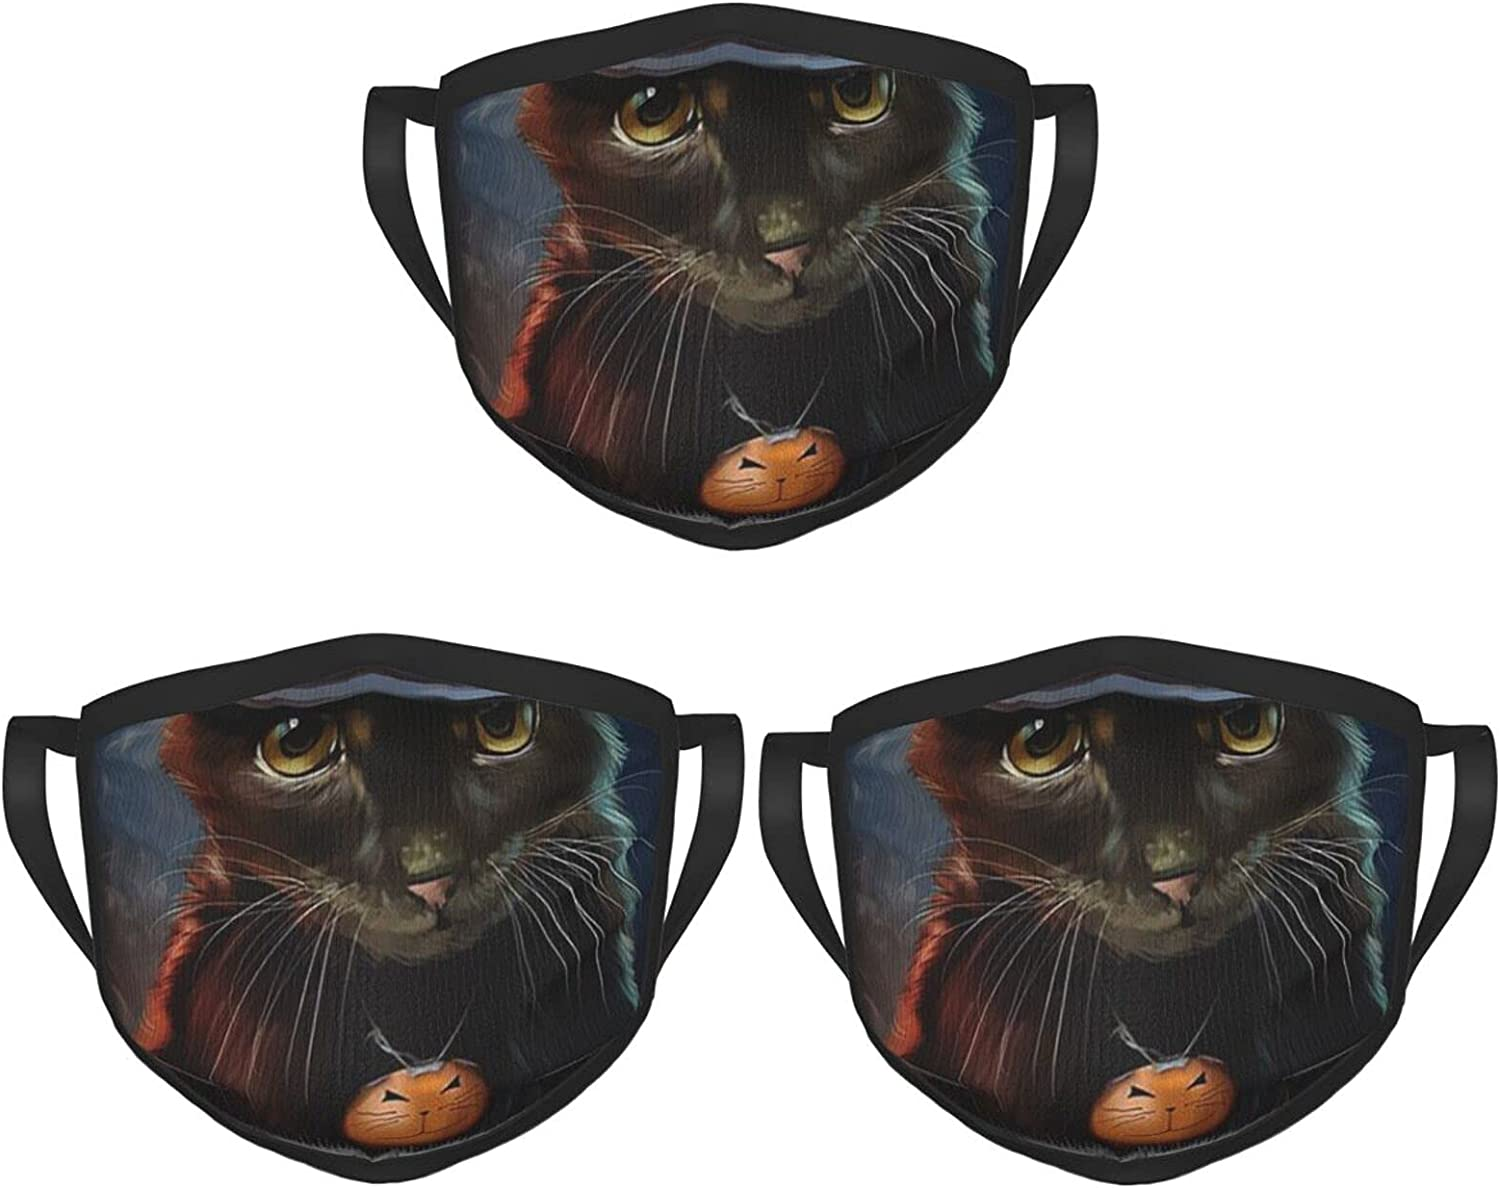 Balaclava Earmuffs Black Cat Pumpkin Lantern Witch Hat Face Mouth Cover Mask Reusable Windproof Scarf Towel Cover Headwrap